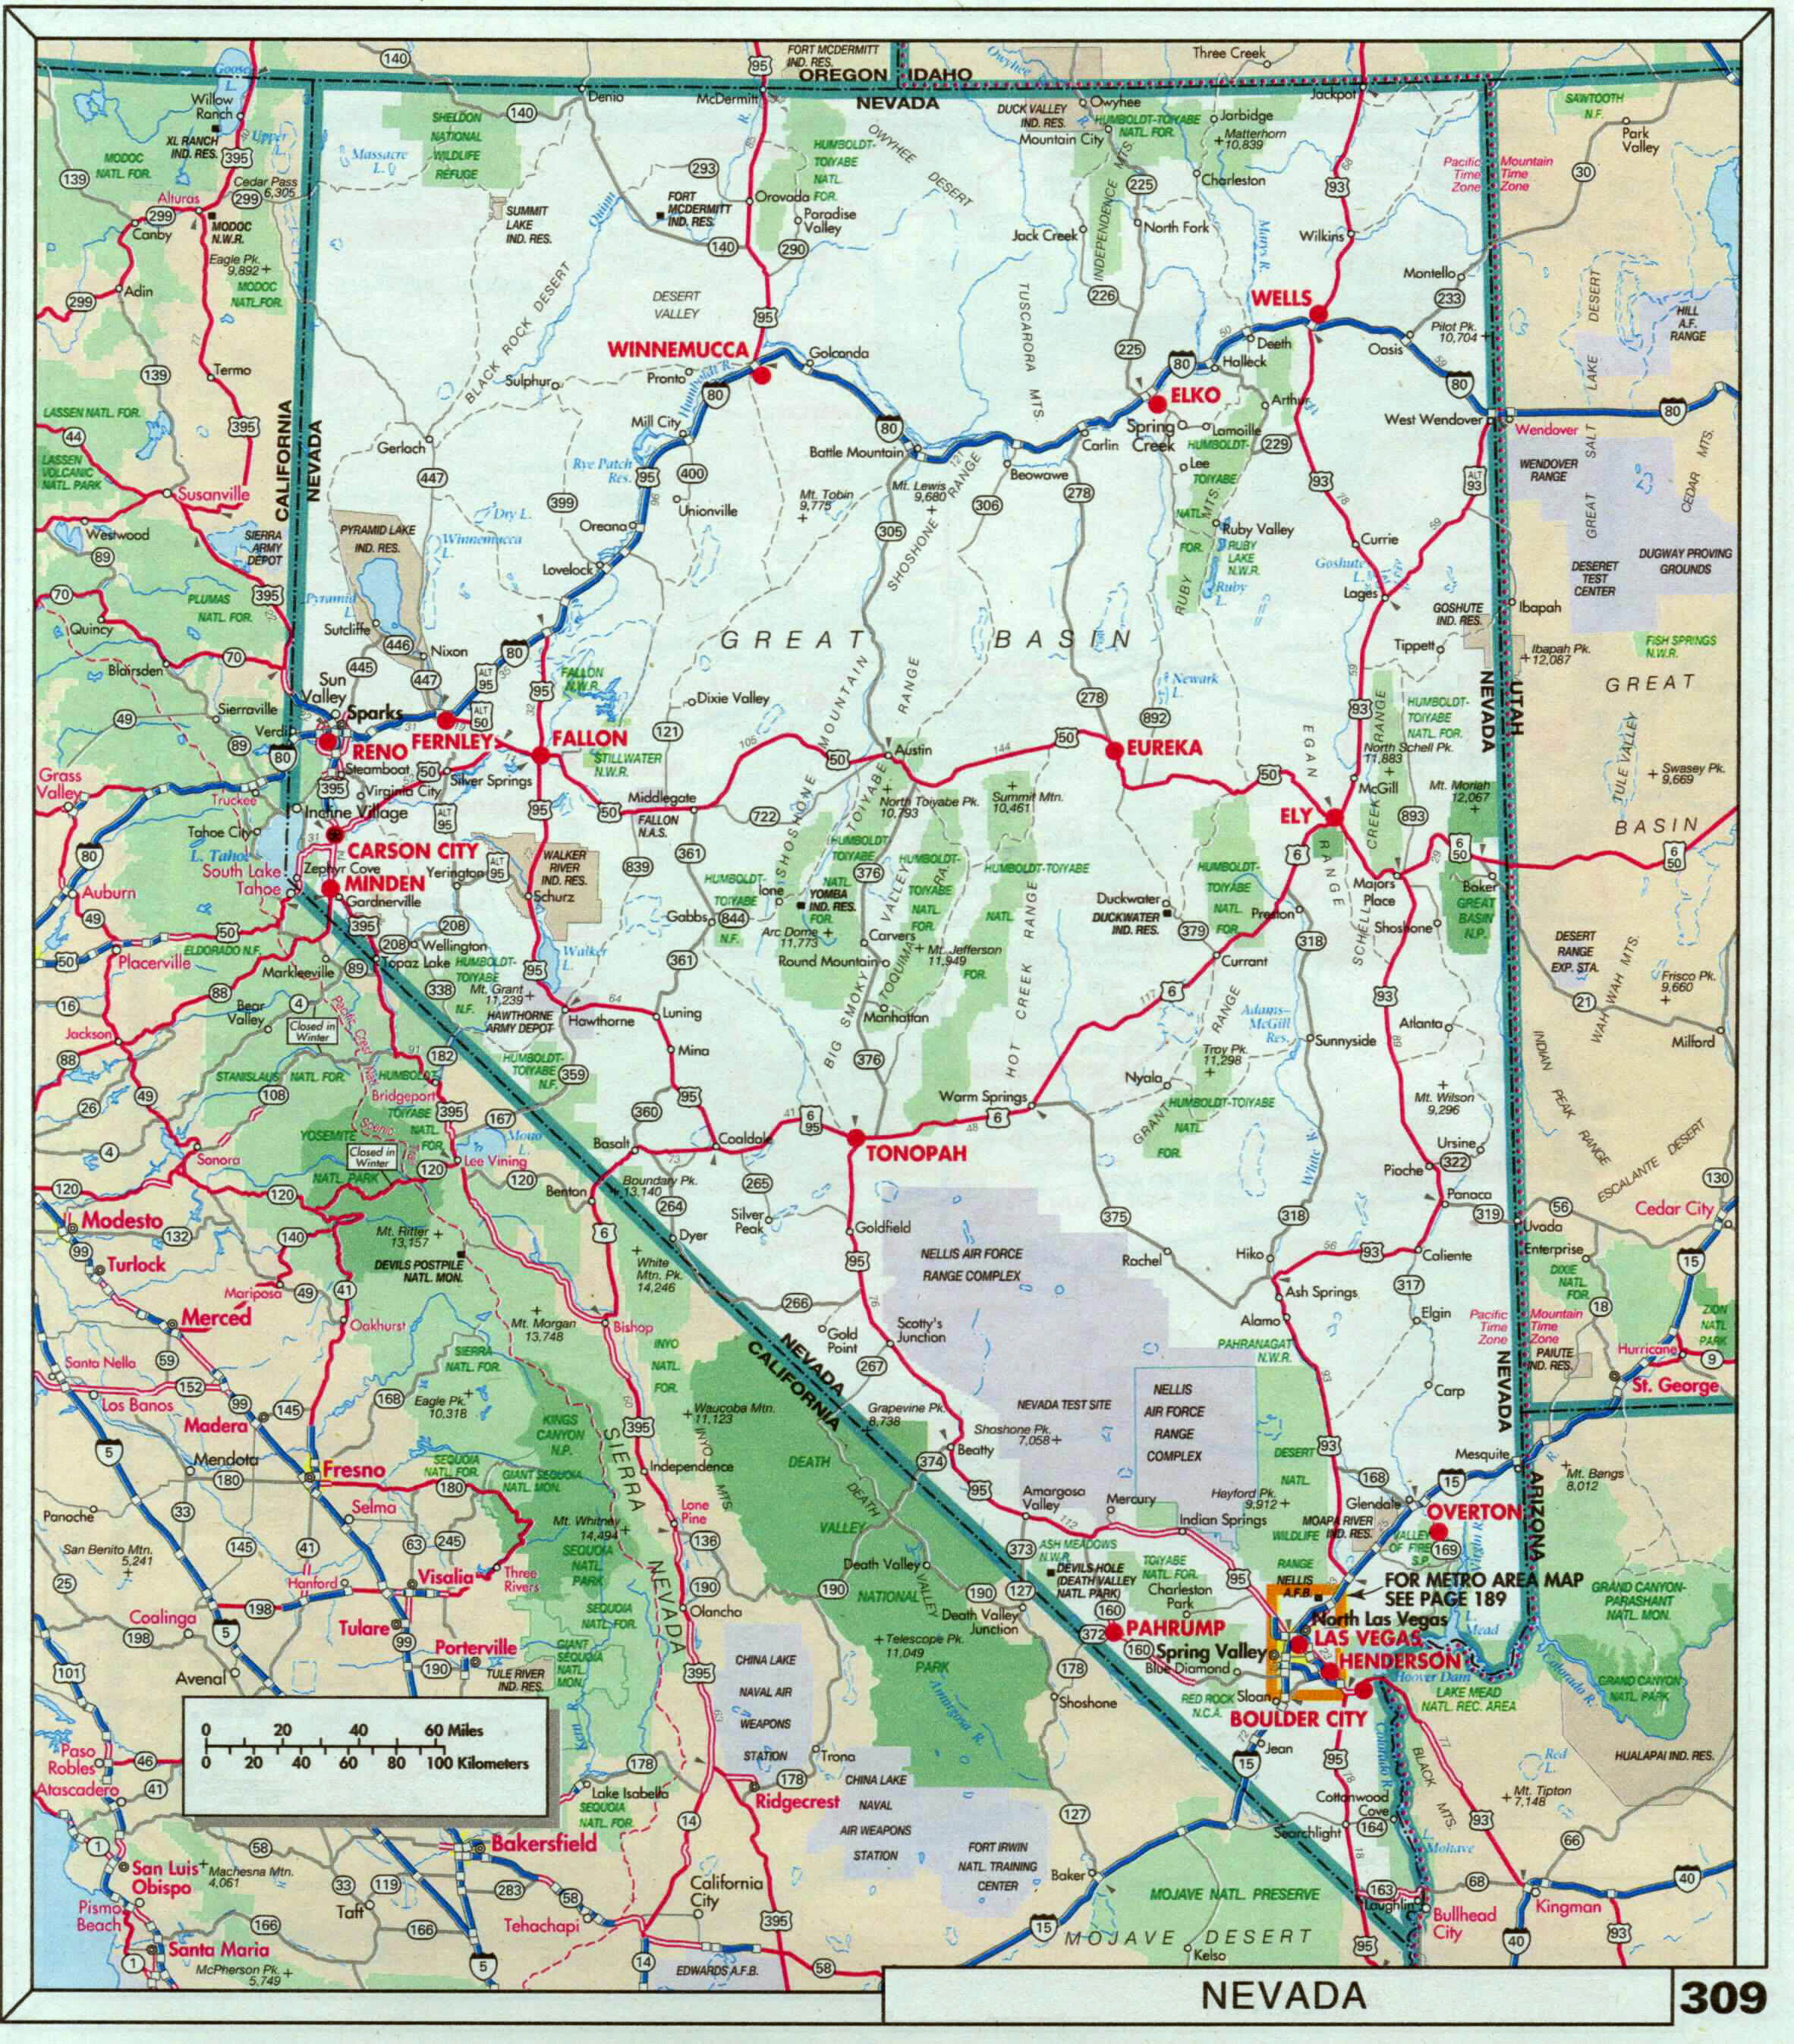 Large detailed roads and highways map of Nevada state with